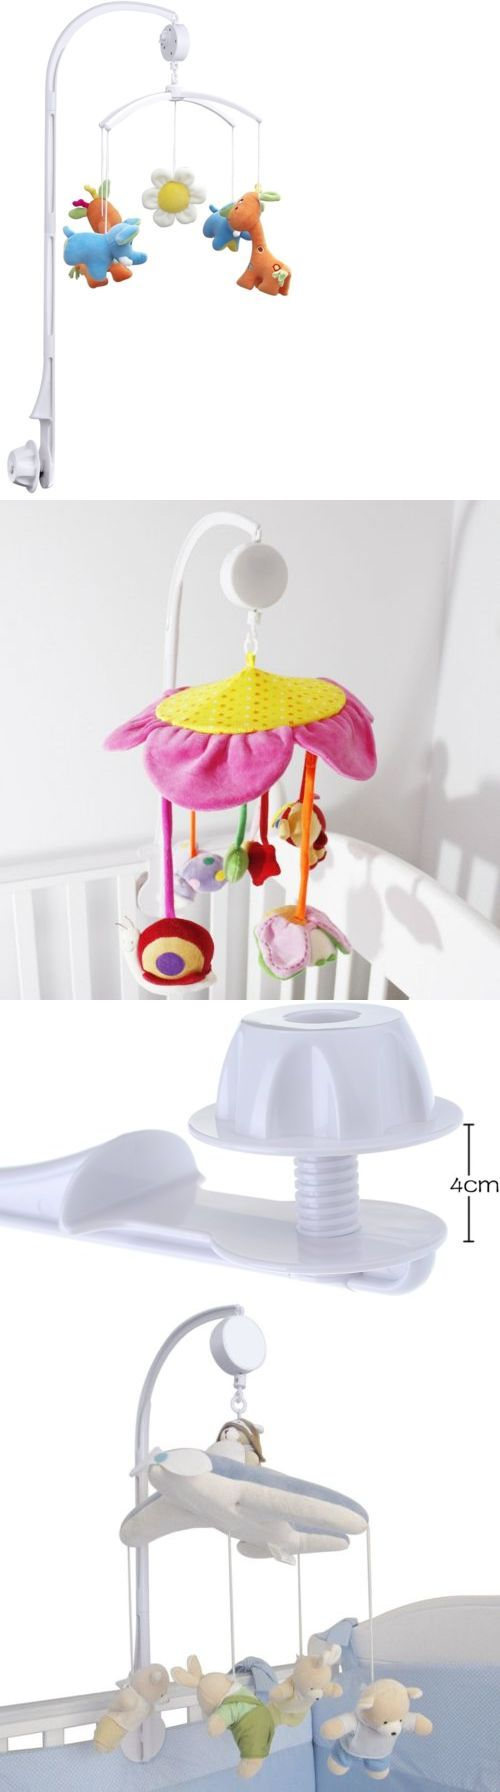 Baby Nursery Coutlet Baby Crib Mobile With Bed Bell Holder Arm